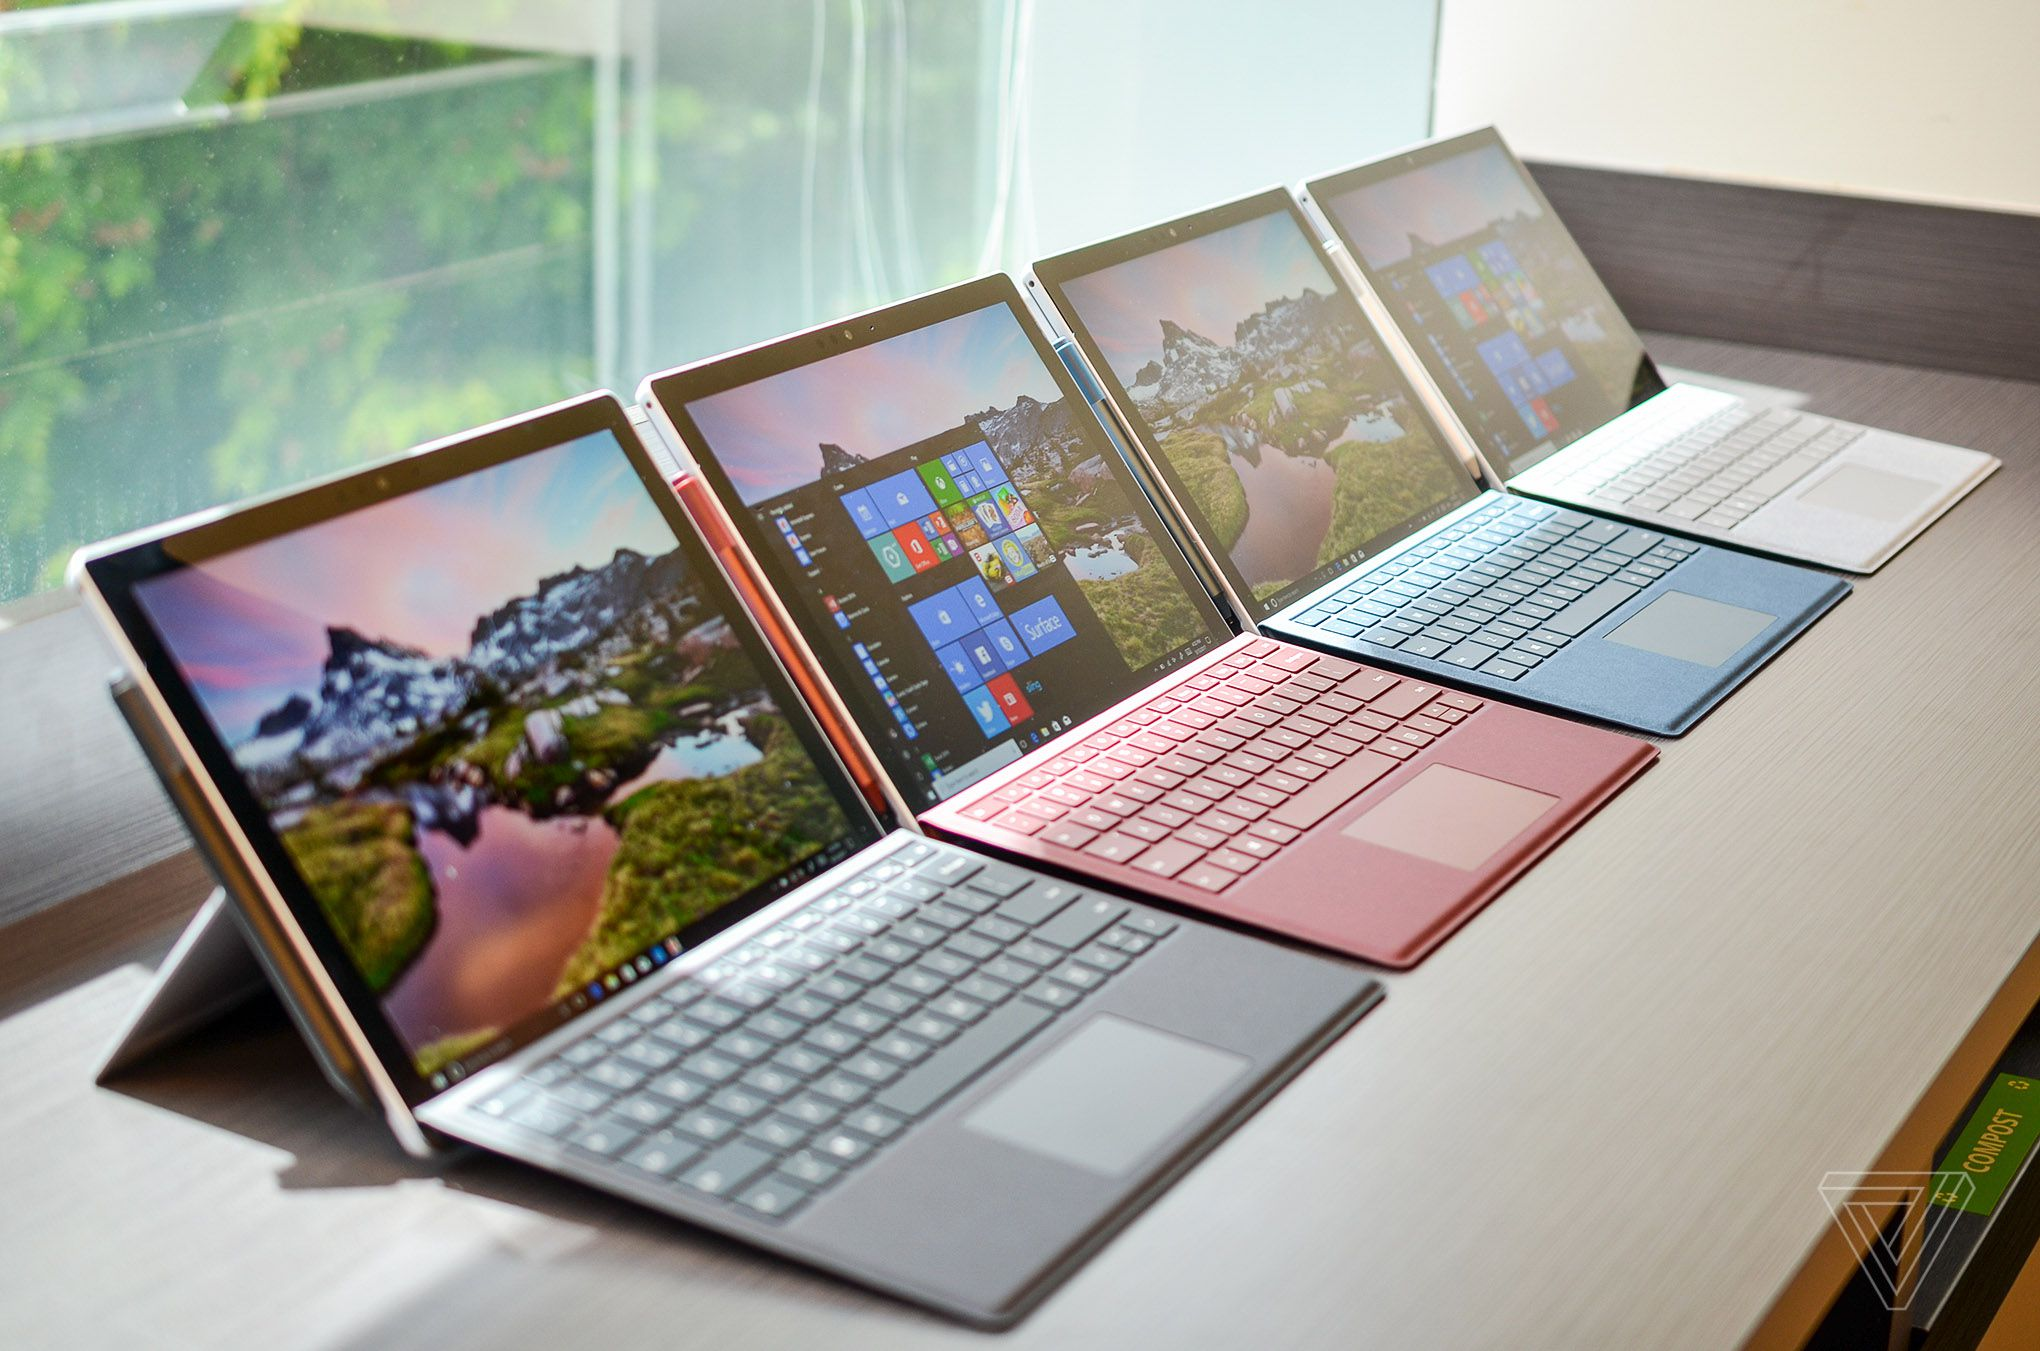 Microsoft's Surface Pro with LTE launches in December https://t.co/isIj2xgFxb https://t.co/PhZmfuqWSN